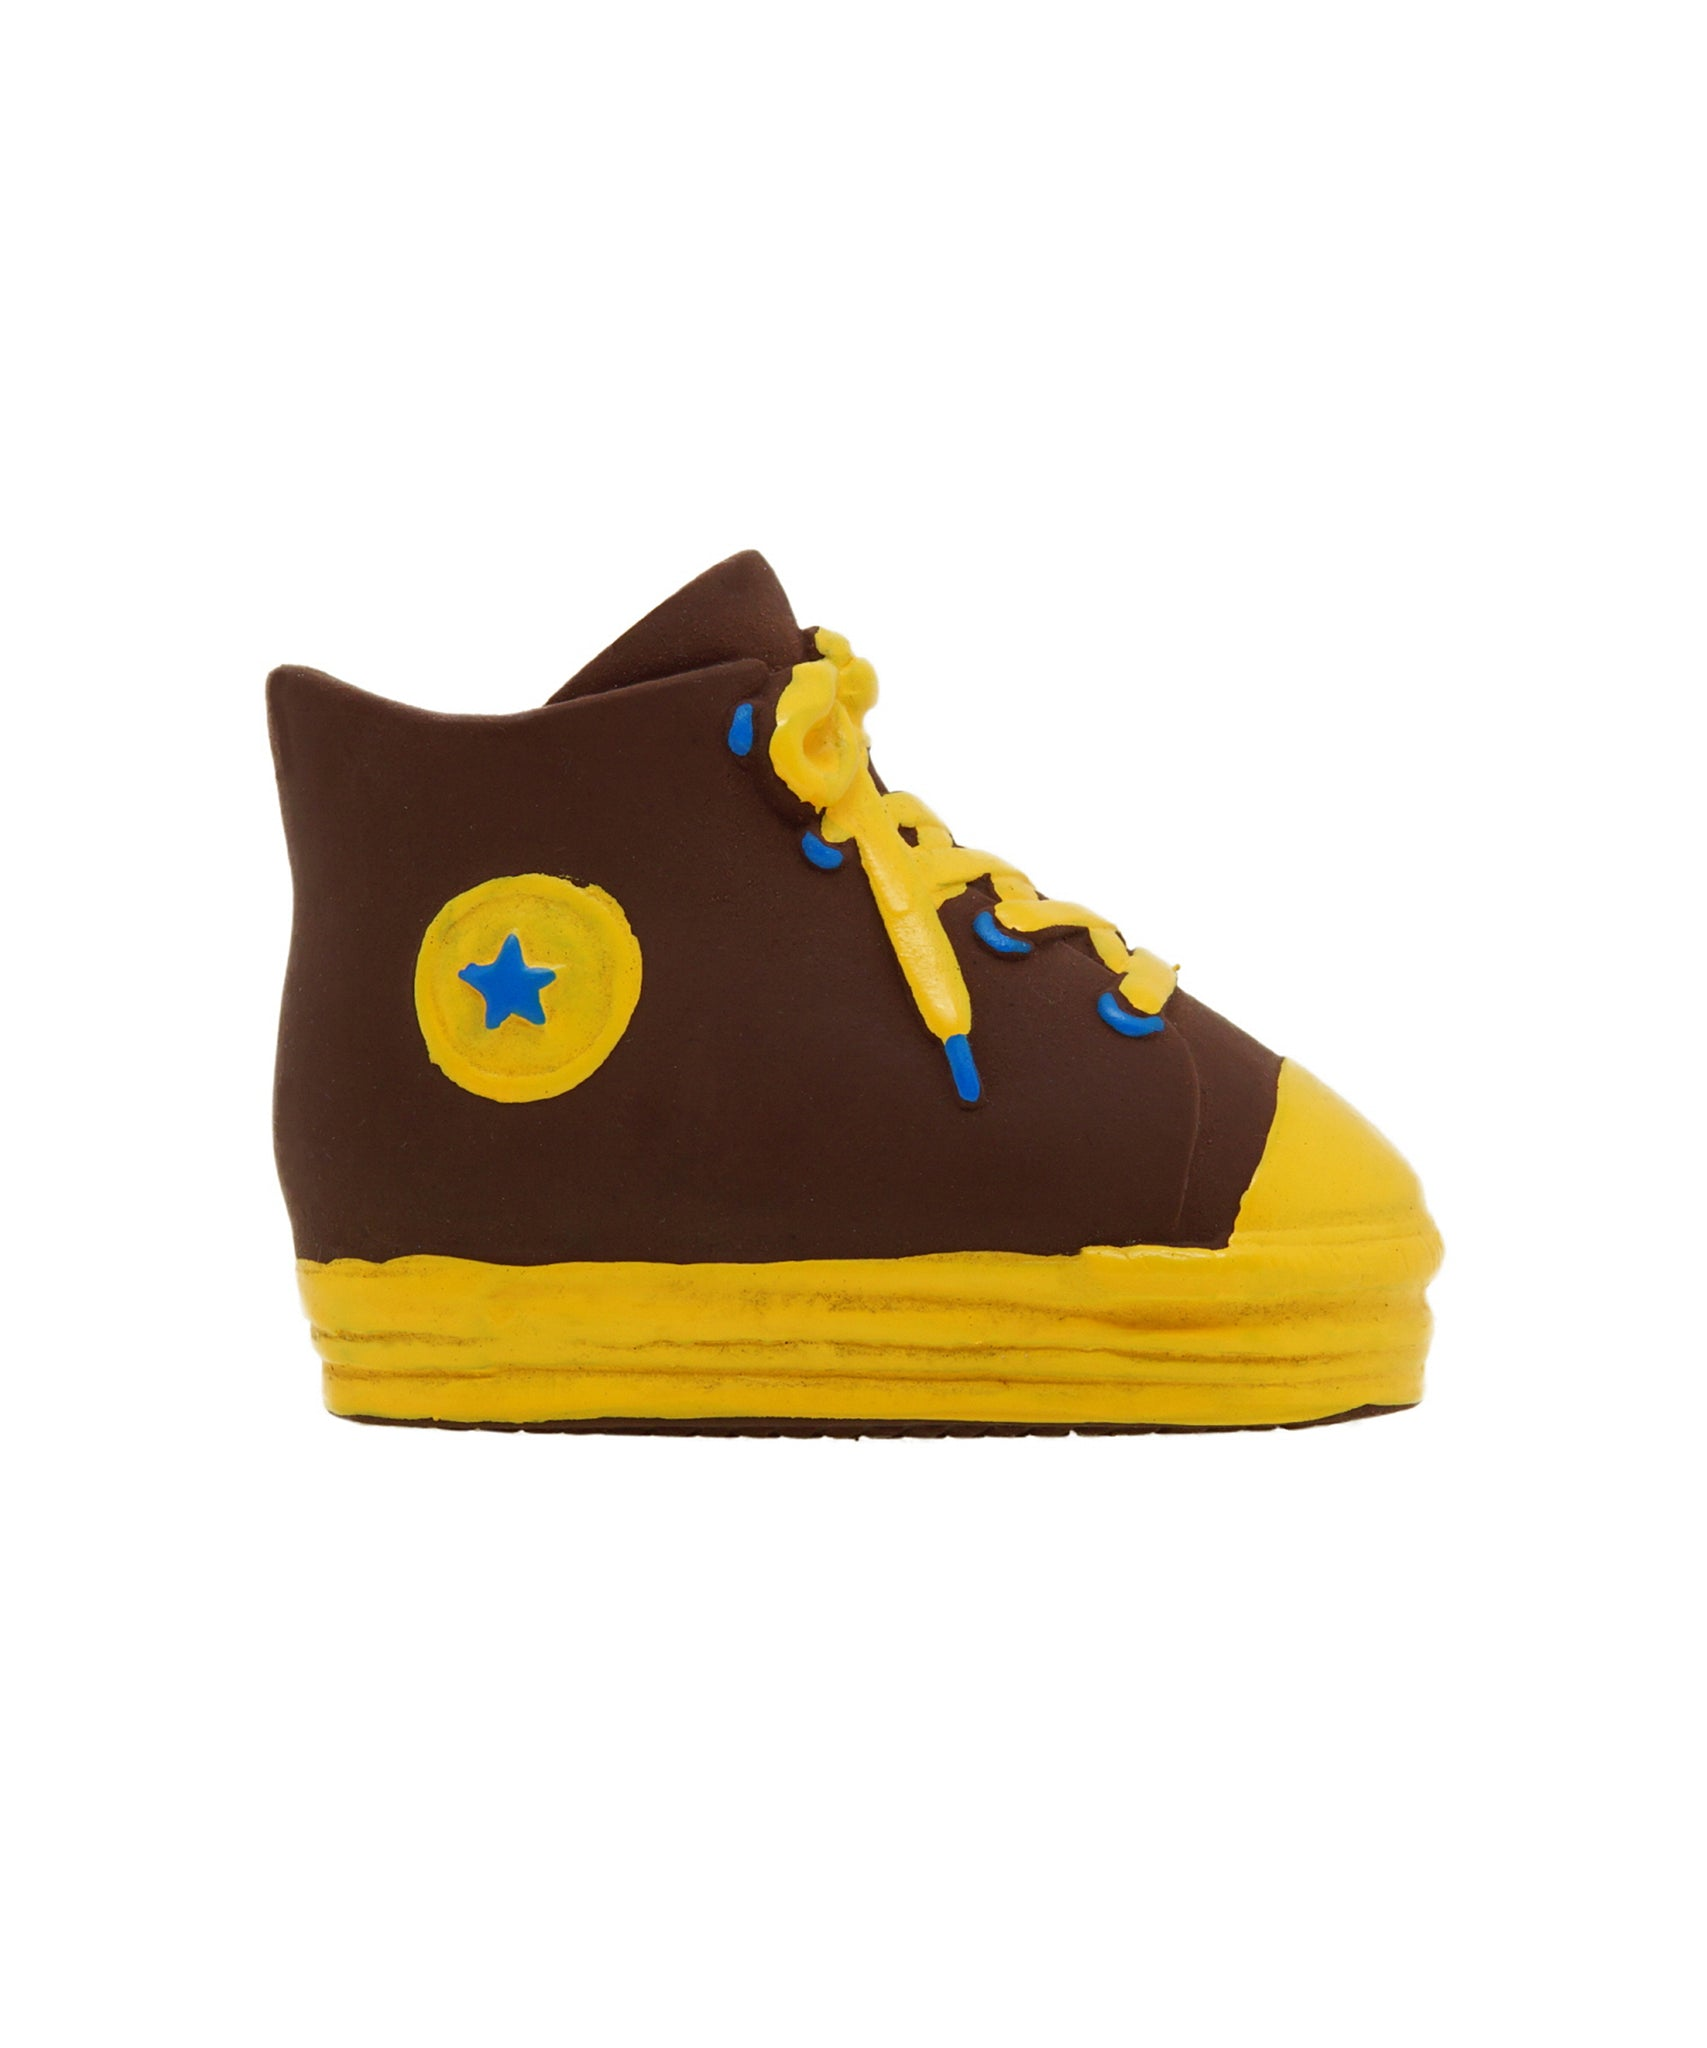 brown rubber shoe dog toy 5